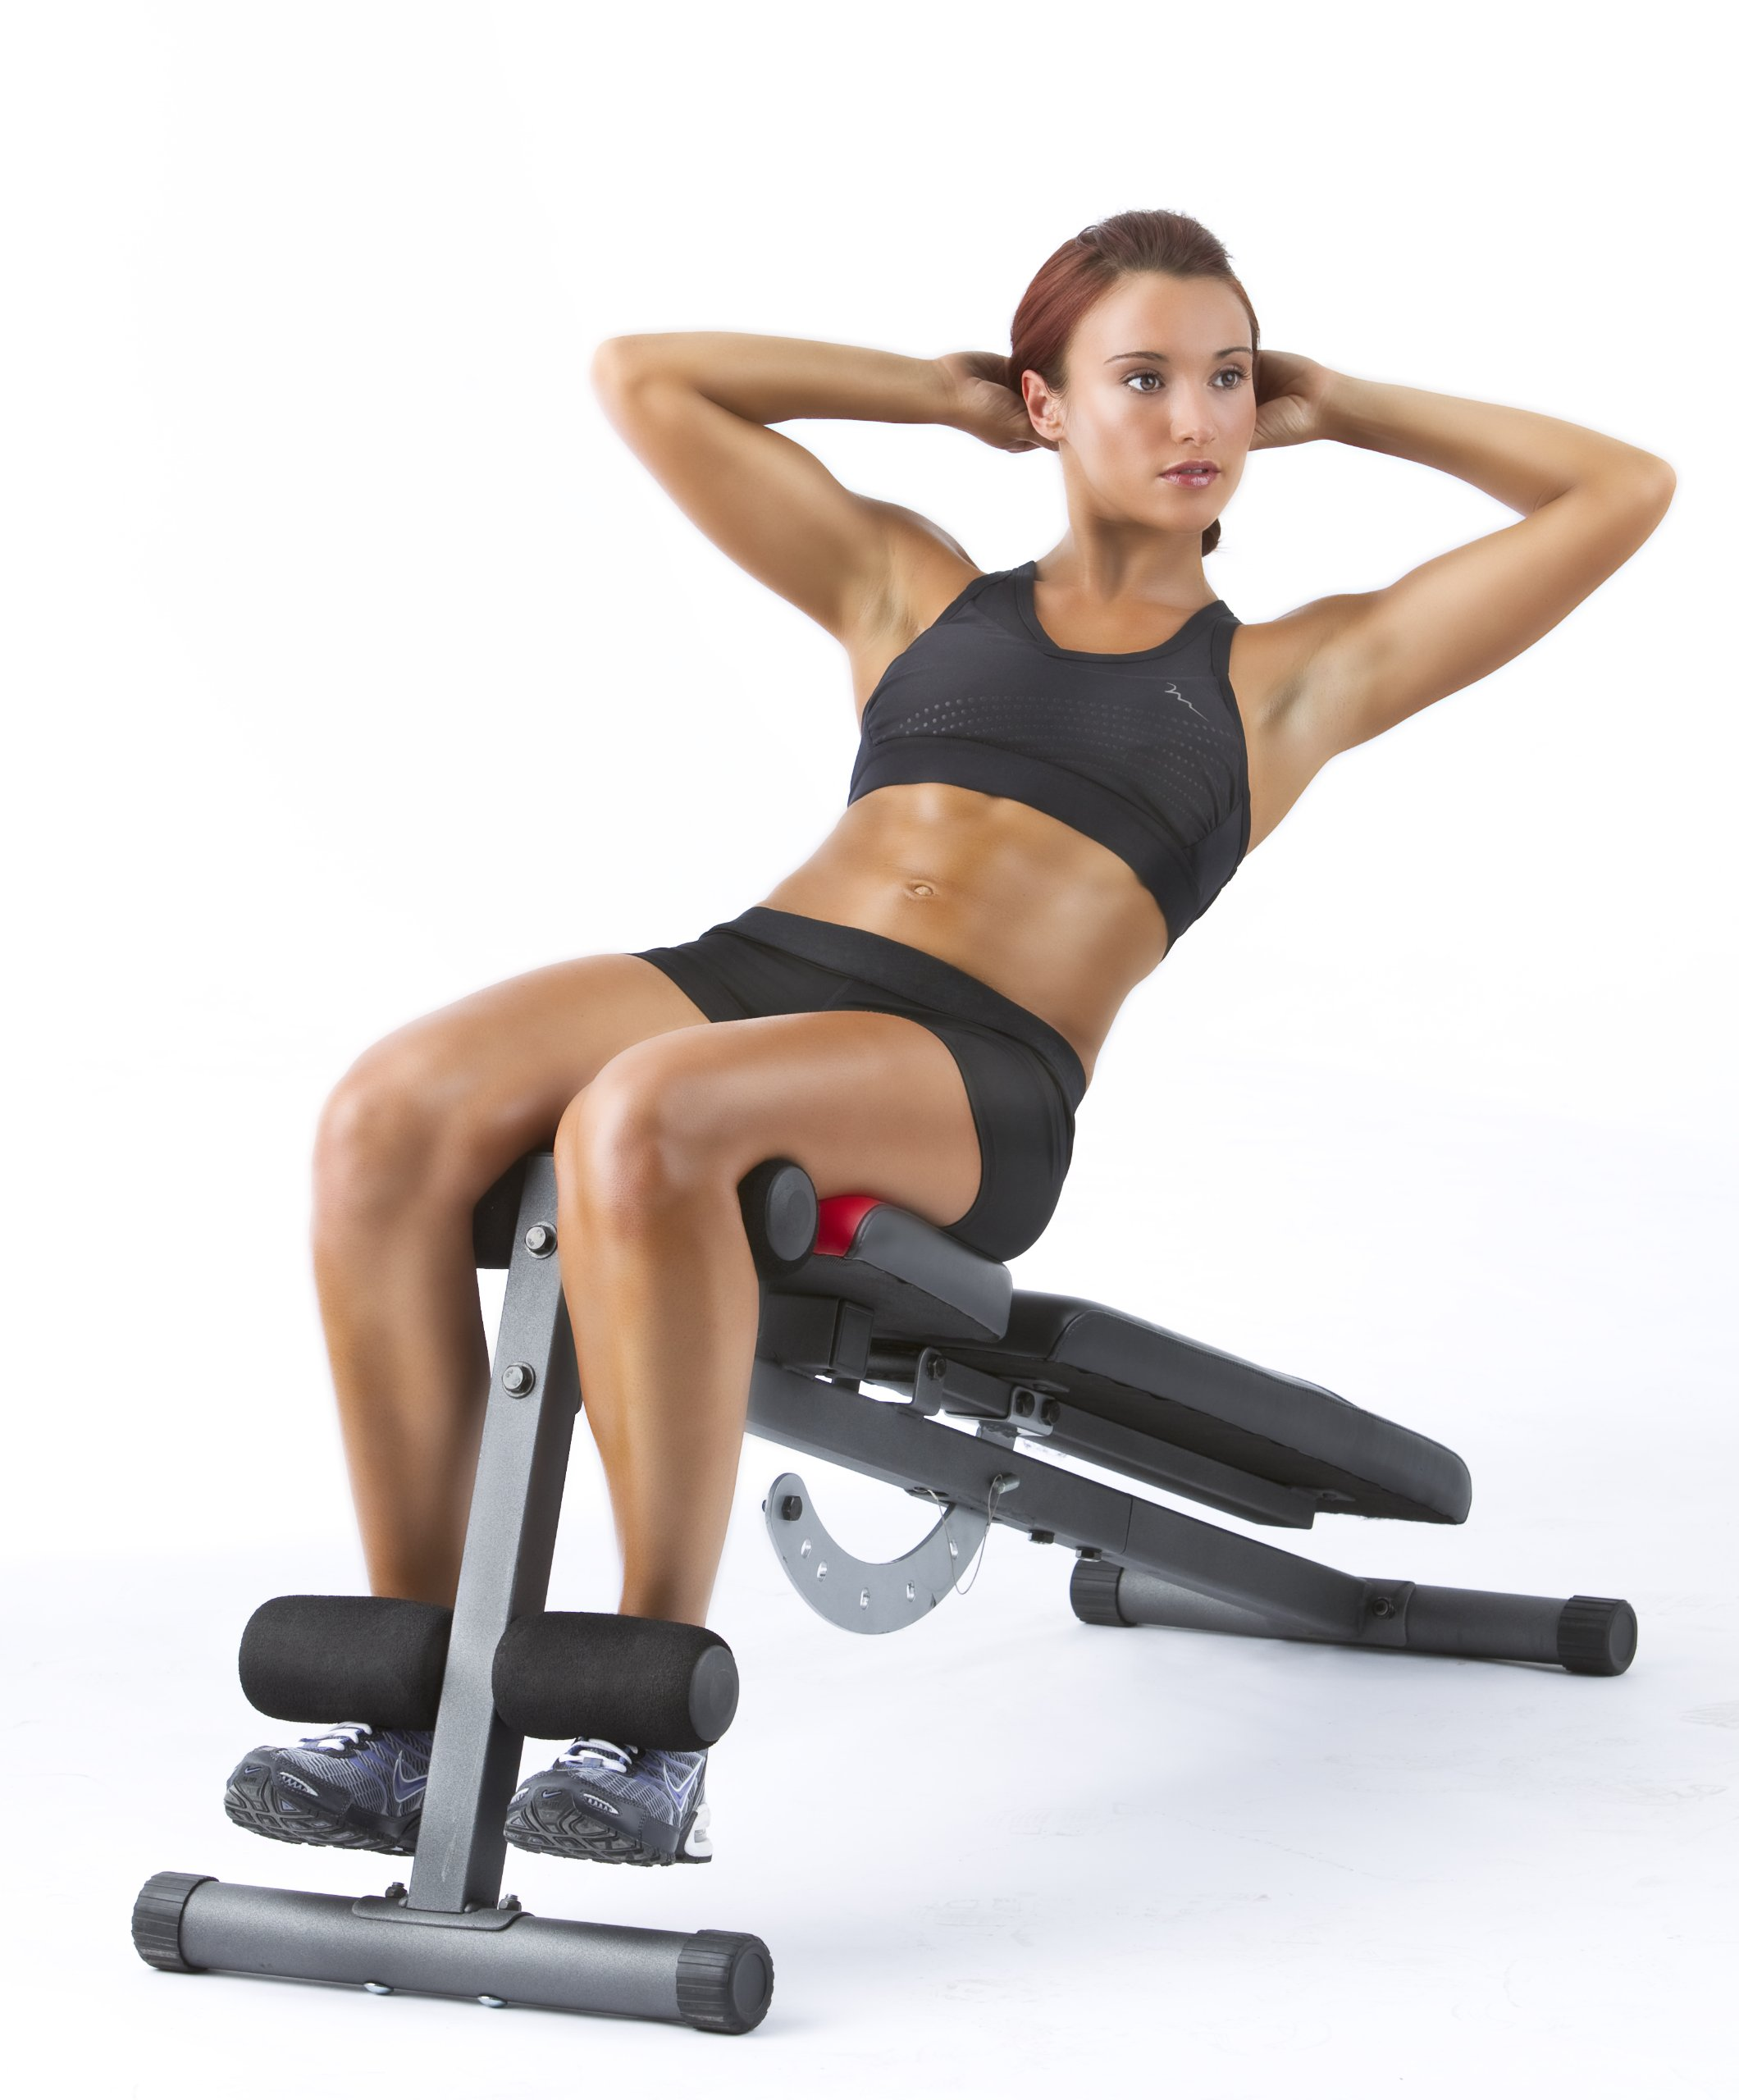 with equipment shop racks bench gym olympic incline and from azfitnessequipmentcom fitness benches sport adjustable by fixed made weight collections press marbo multifunctional